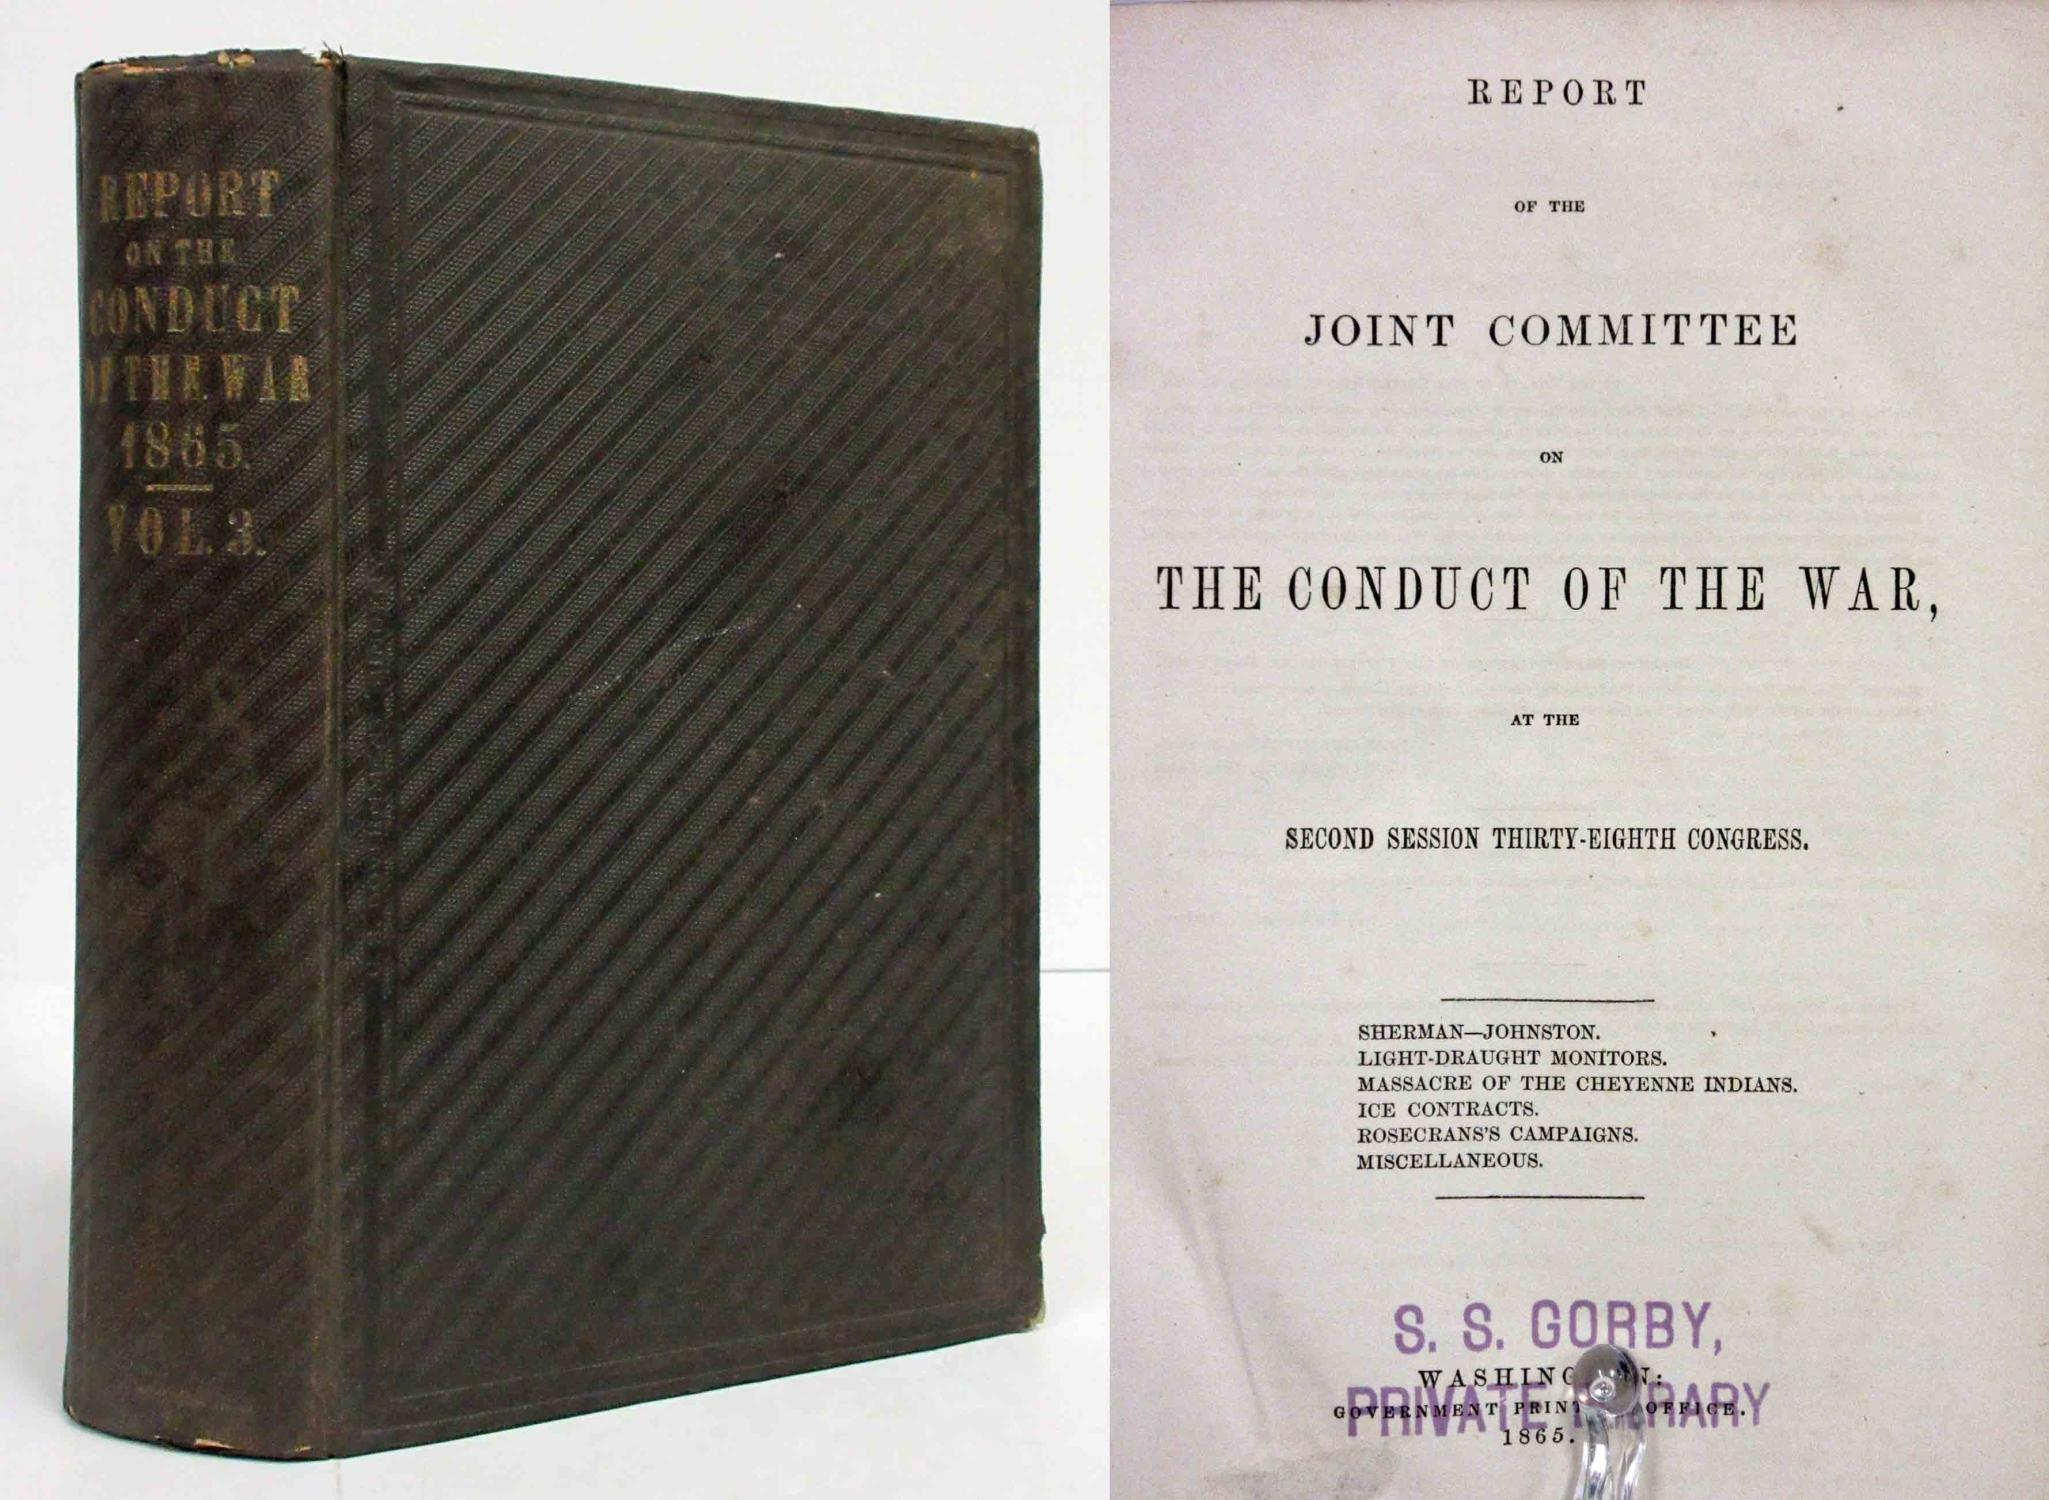 REPORT OF THE JOINT COMMITTEE ON THE CONDUCT OF THE WAR ...